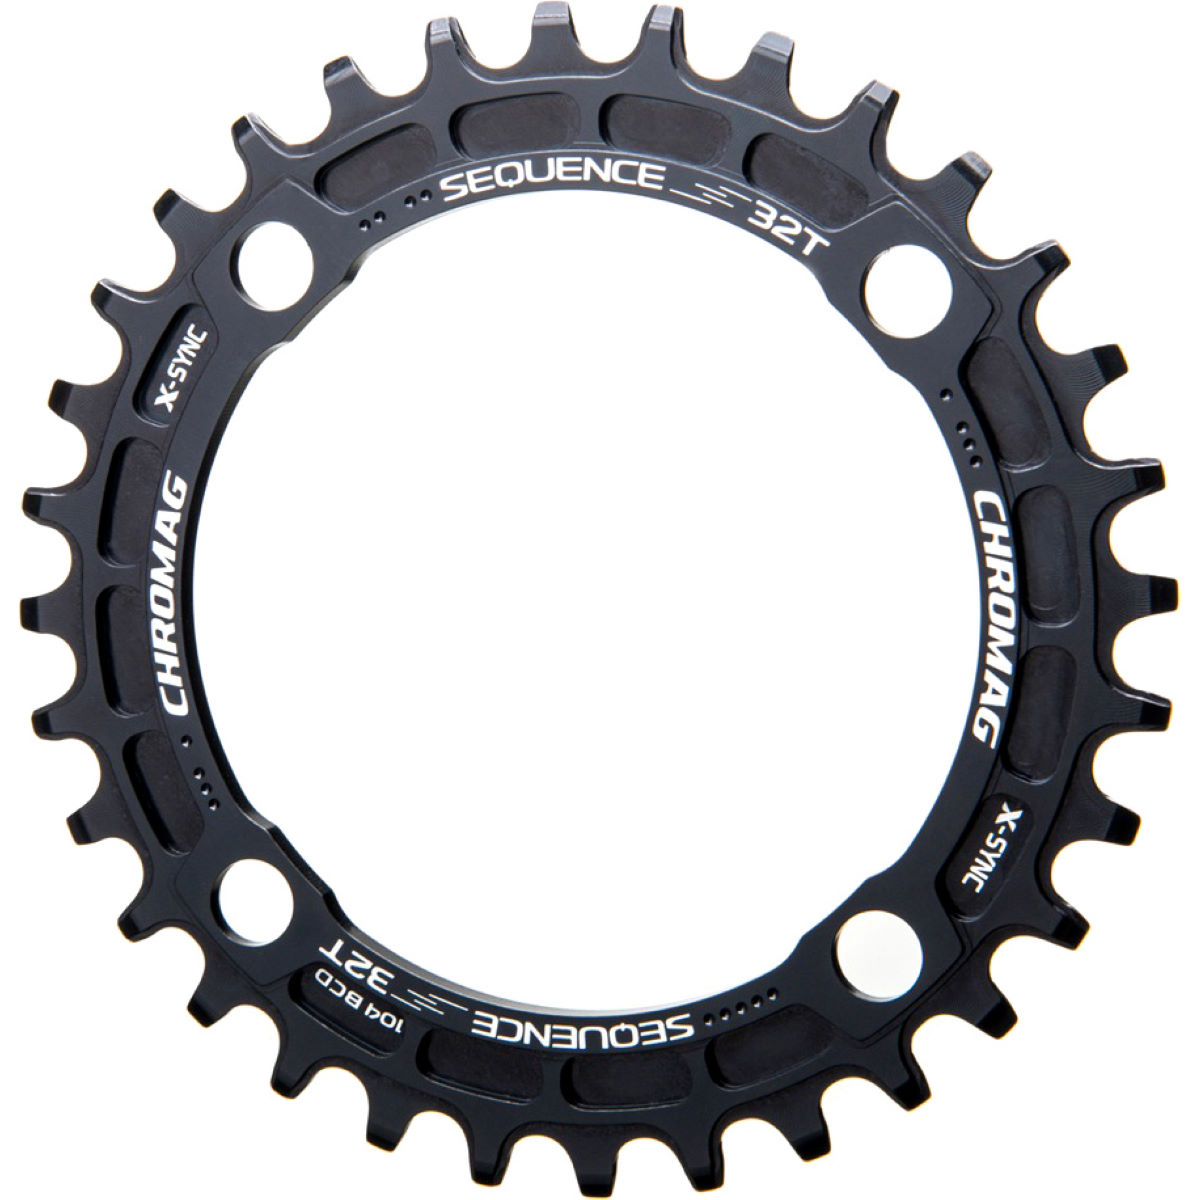 Chromag Sequence 104 Bcd X-sync Chainring - 30t 9/10/11 Speed Black